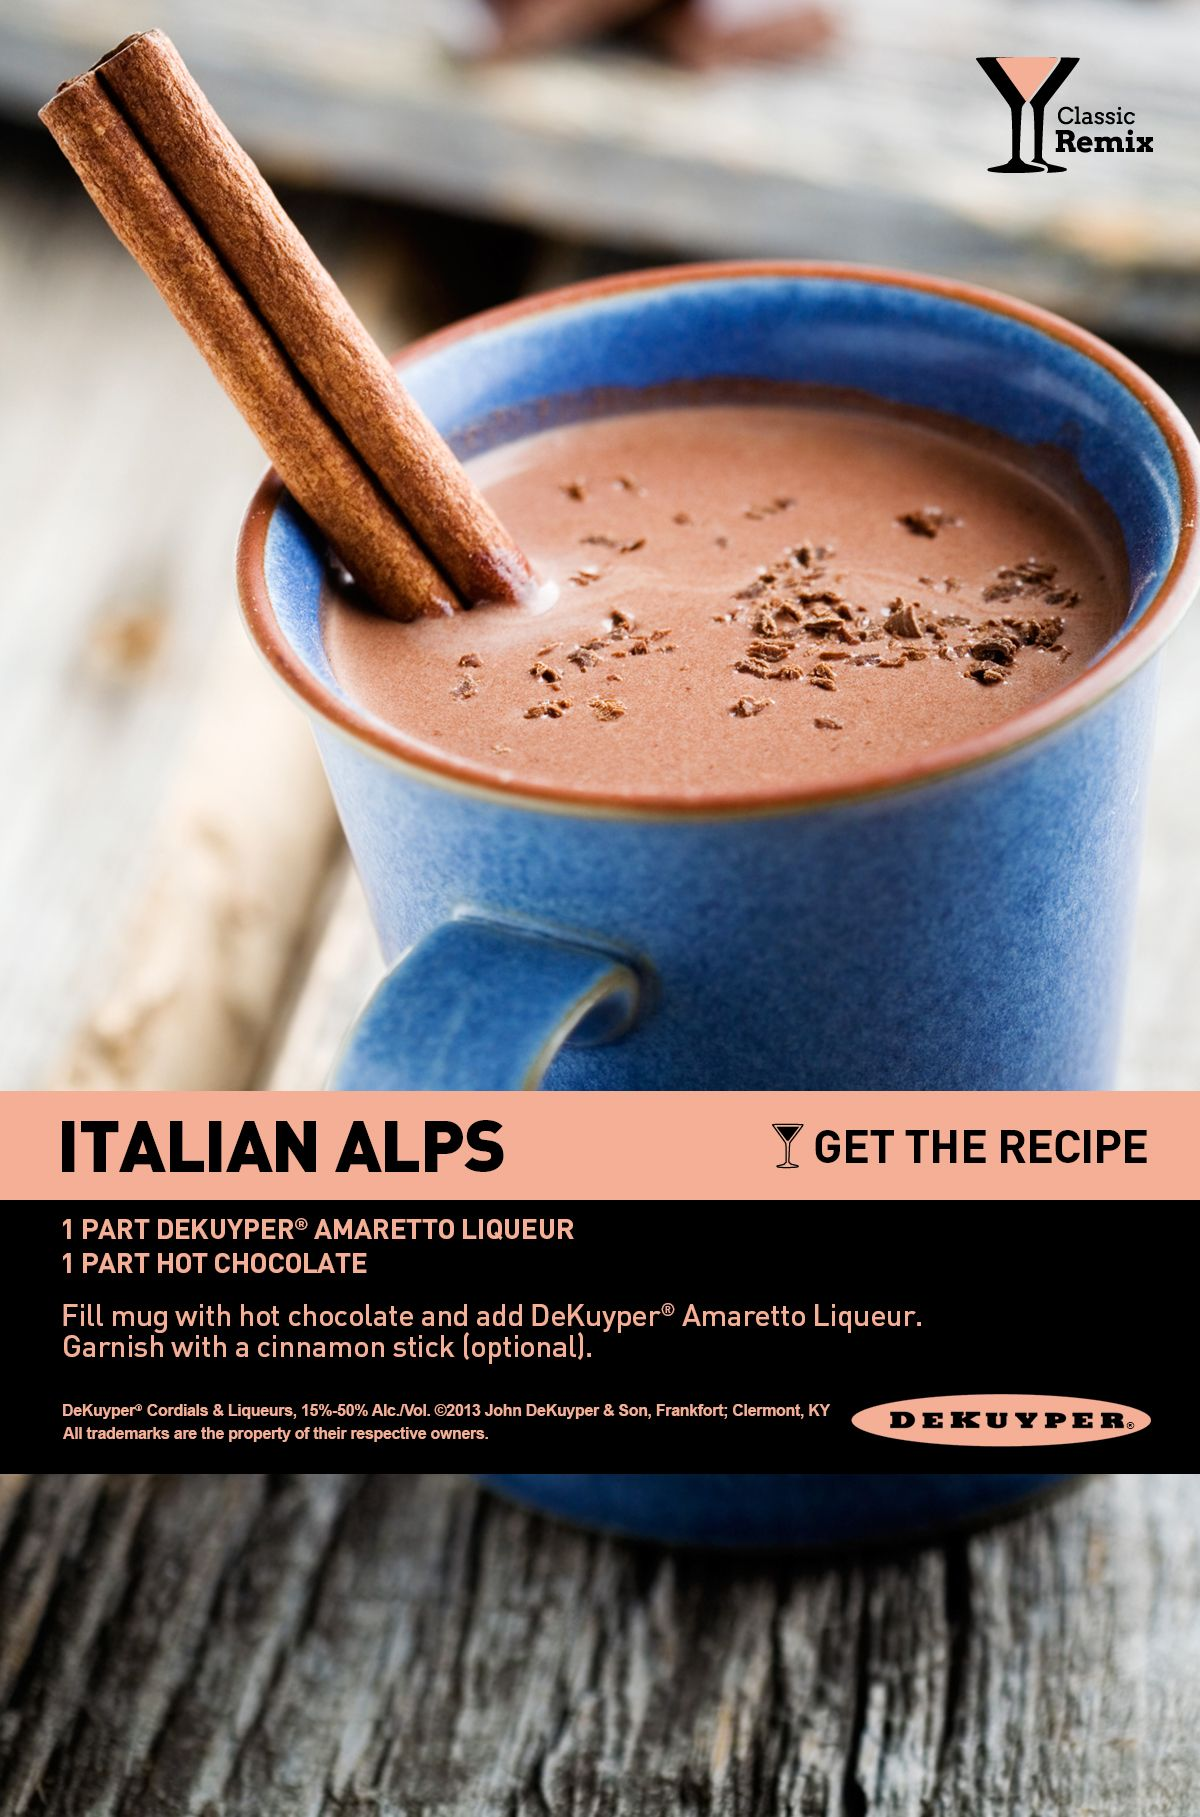 Italian Alps Cocktail Recipe. Perfect for a cozy evening